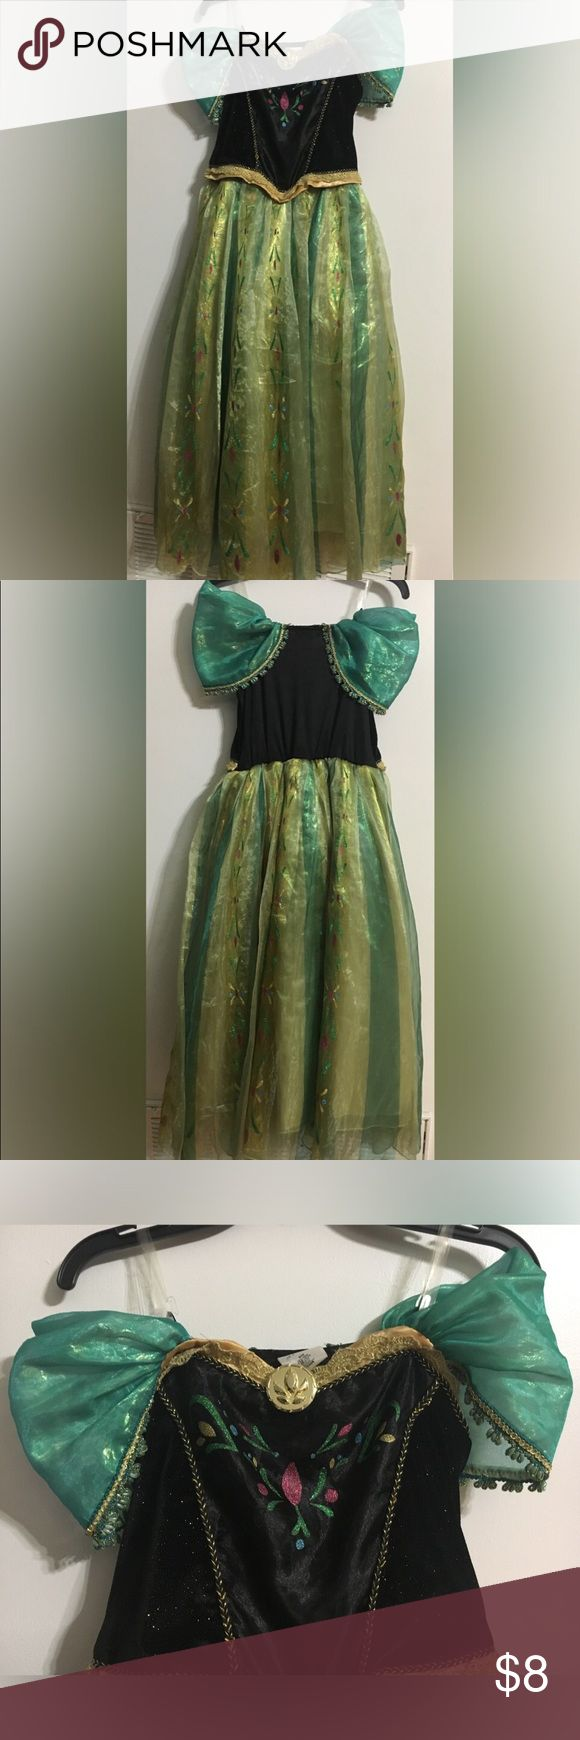 Anna Disney Store Costume, Girls size 9/10 Princess Anna from Frozen's Gown. Size 9/10 from The Disney Store. Good used condition. Beads on the sleeves have lost their color in some spots as shown in pictures. Dress has clear shoulder straps. Very good quality with lots of detail. Disney Costumes